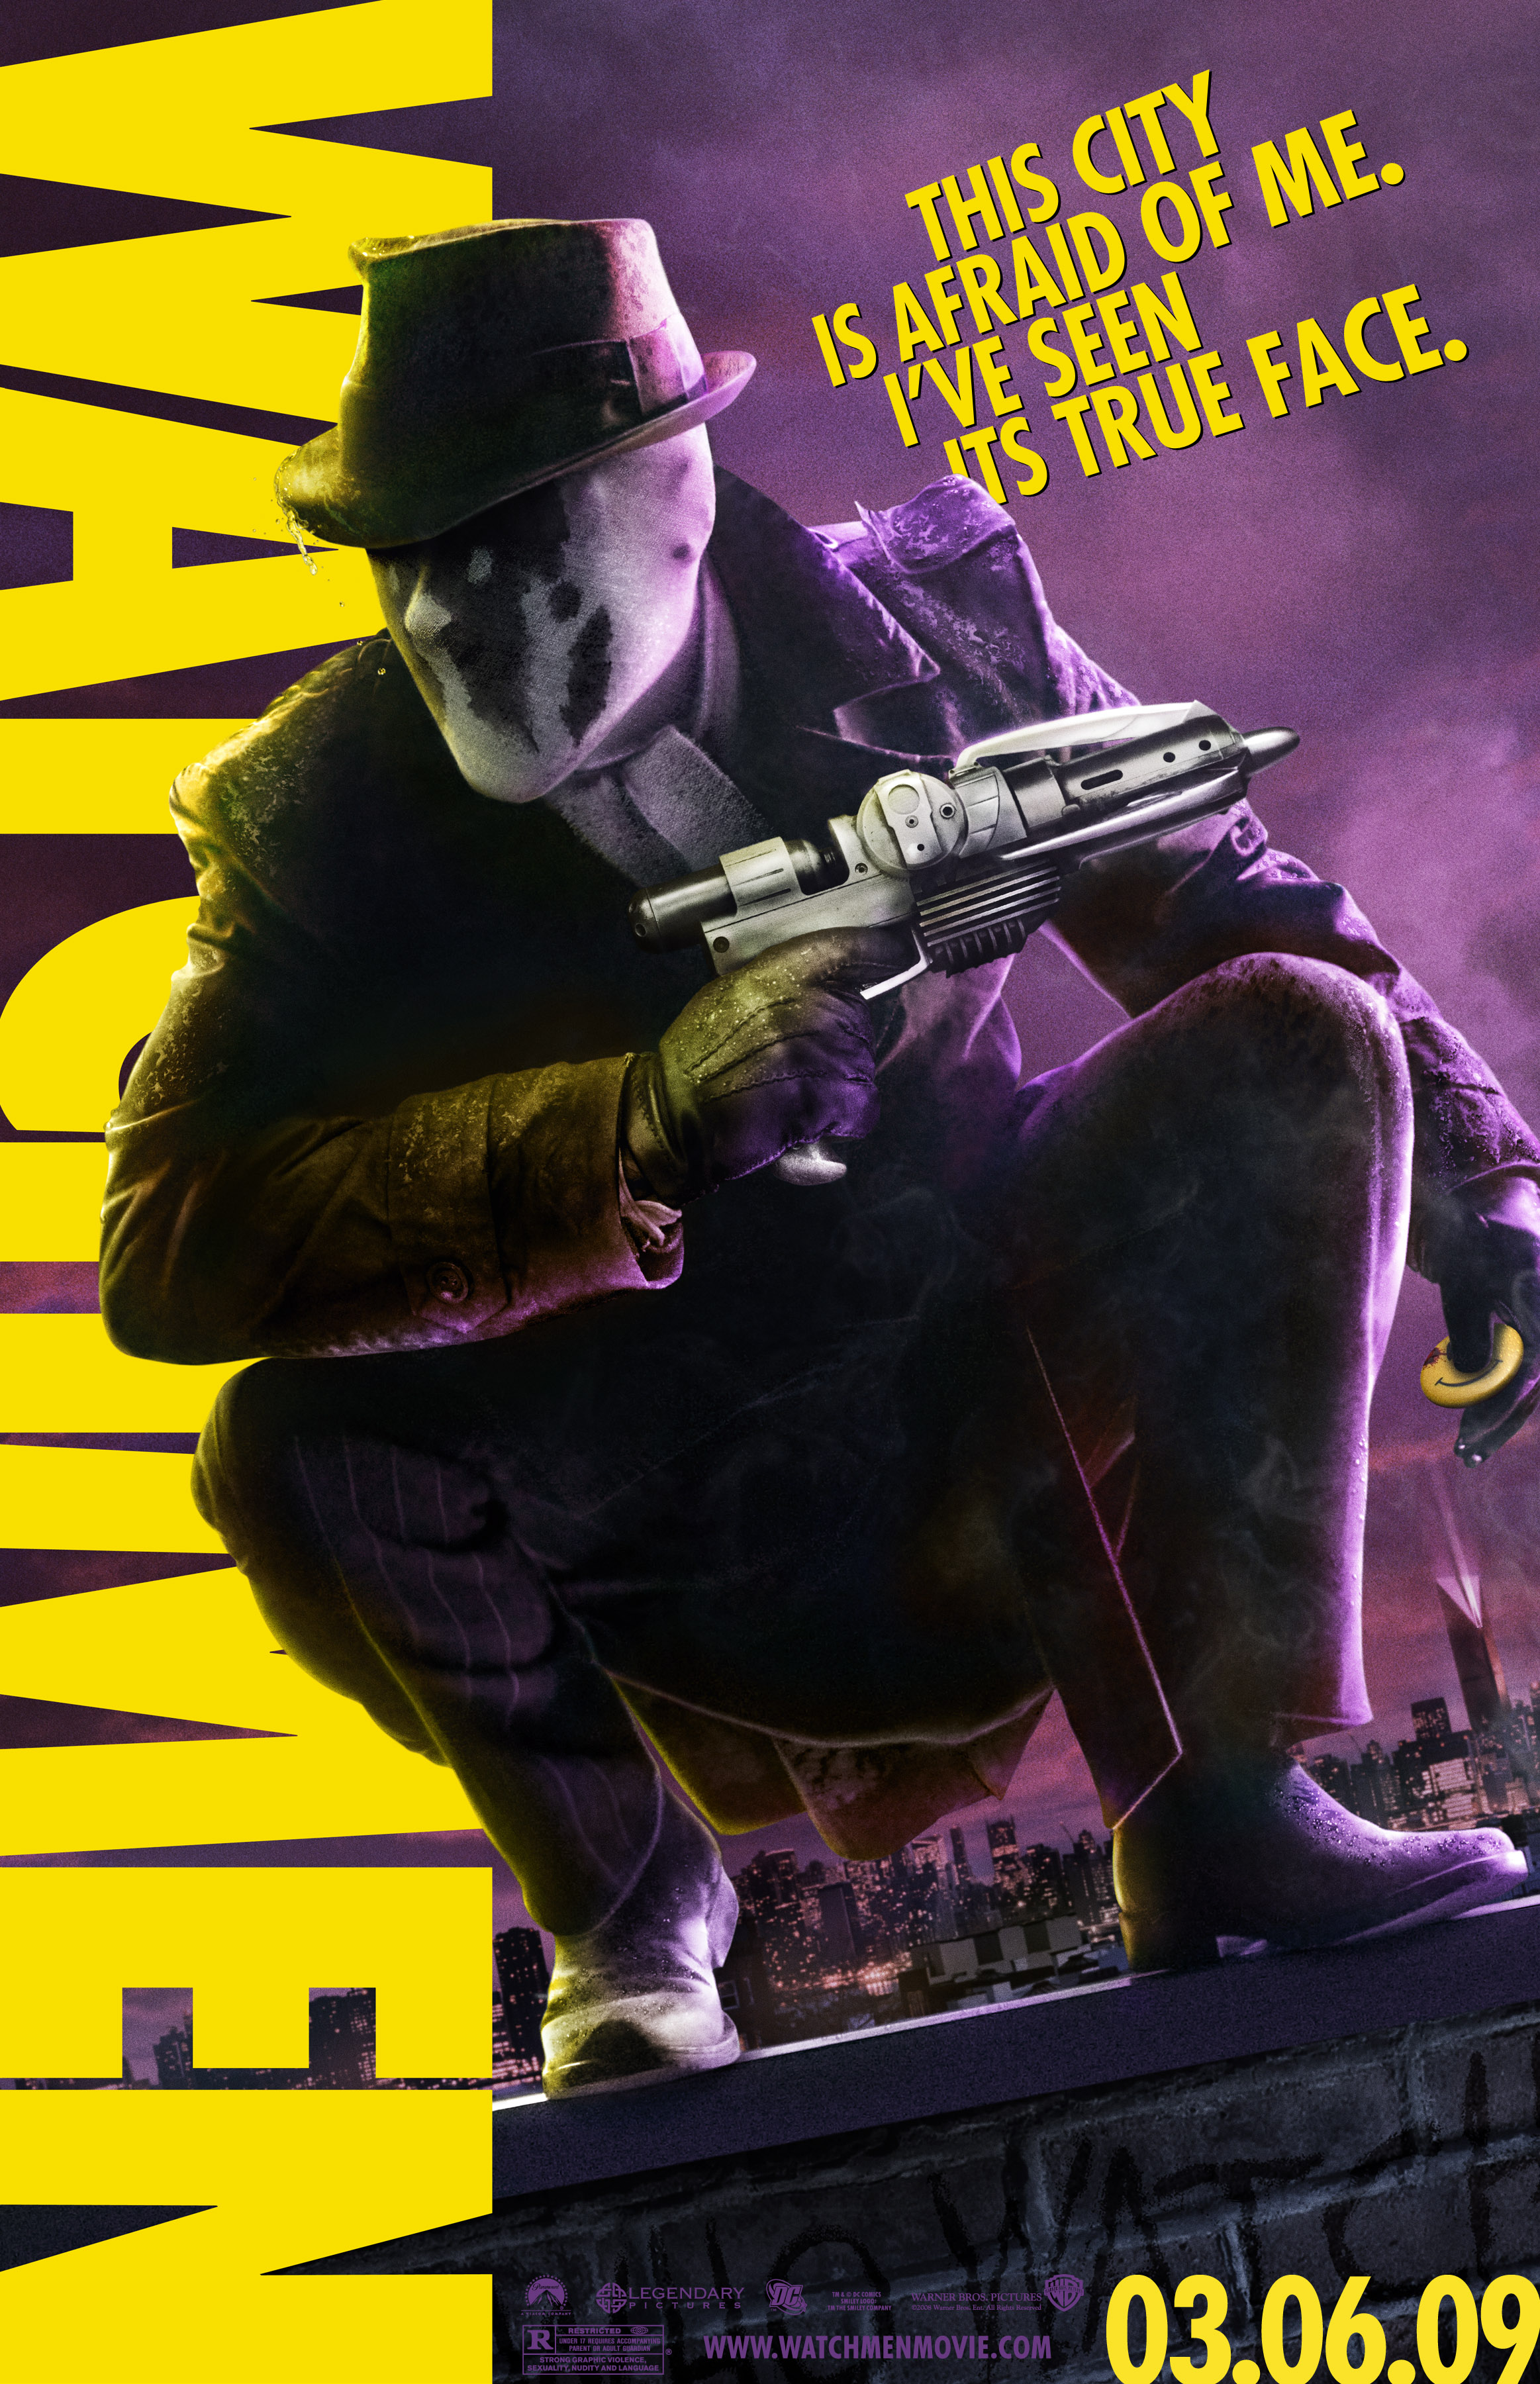 watchmen com watchmen character poster of rorschach jackie earle haley